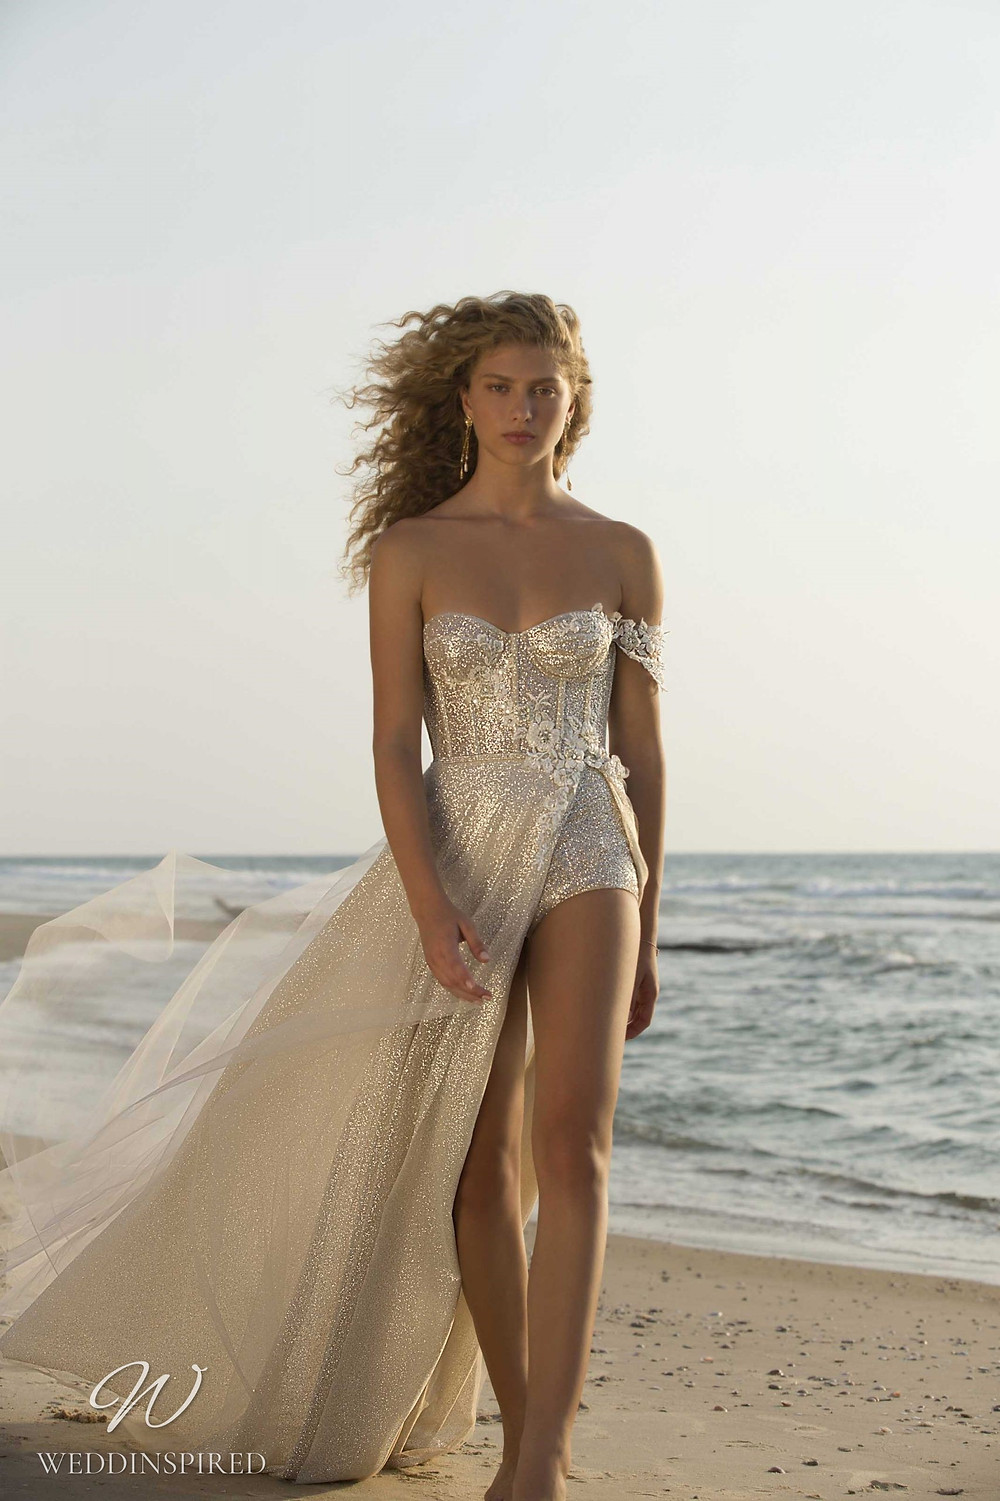 A Muse by Berta gold beach strapless A-line wedding dress with a slit and detachable skirt